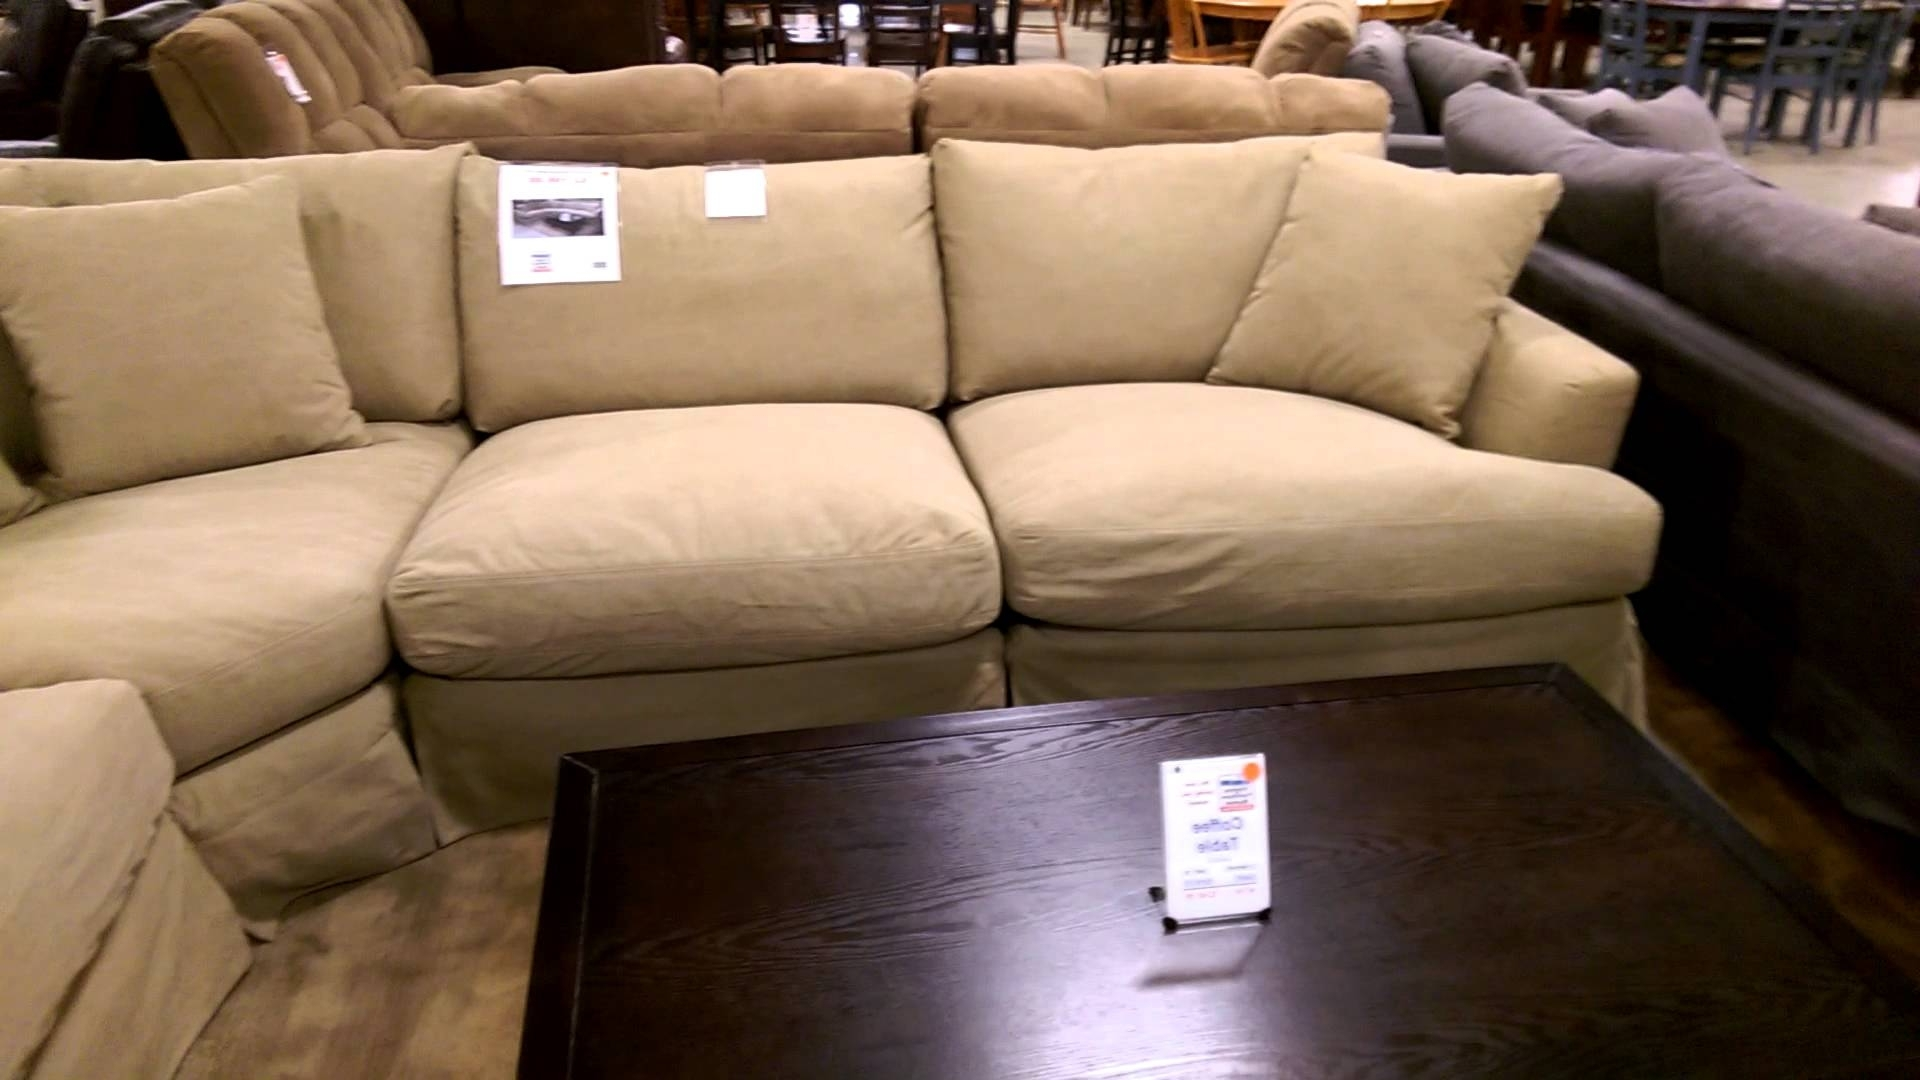 Latest Sectional Sofa Design: Deep Sectional Sofas Recliners Chaise Sale Pertaining To Deep Sectional Sofas With Chaise (View 8 of 15)